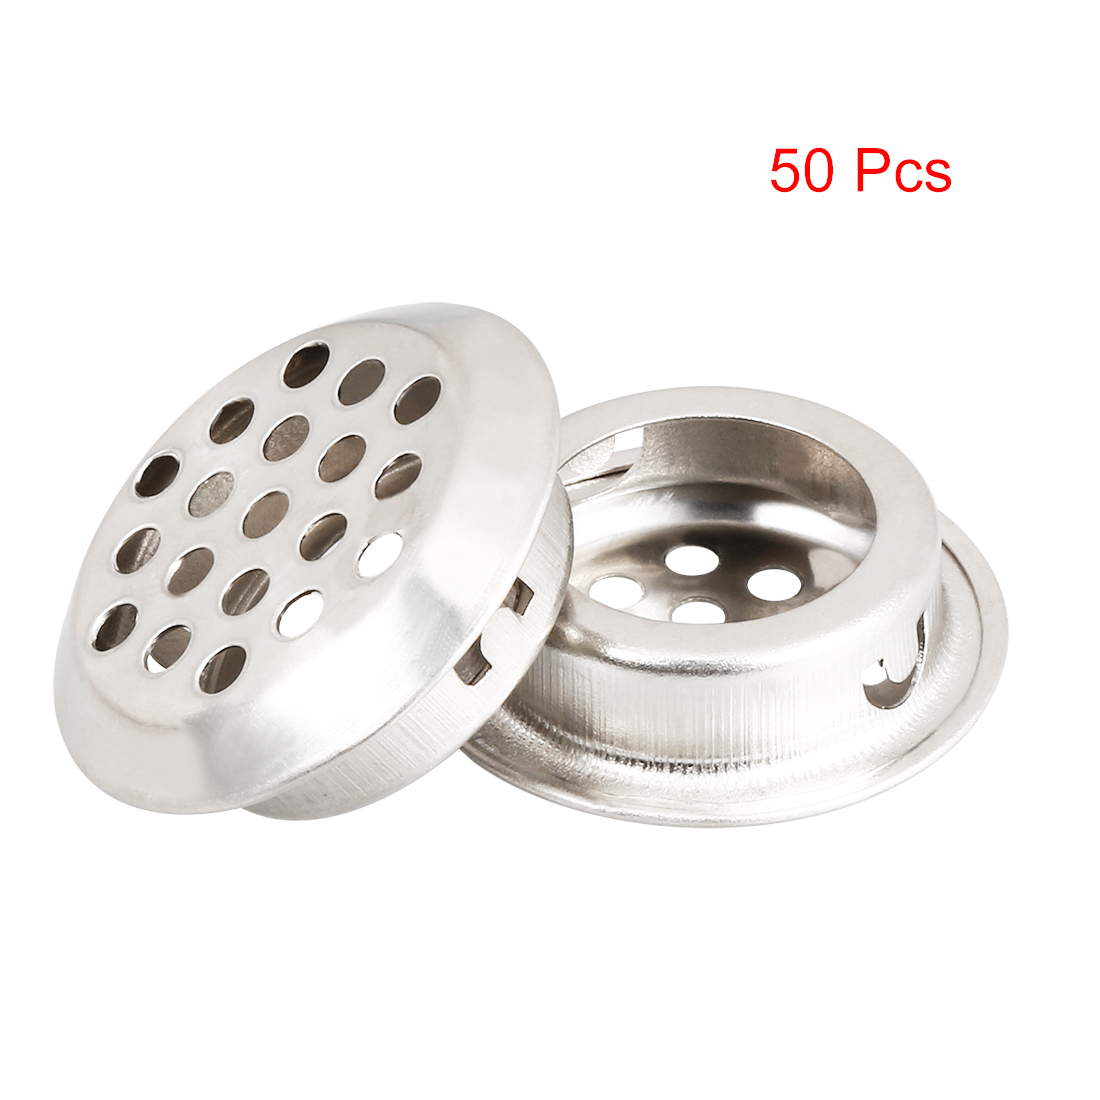 Uxcell New 50pcs Air Vent Extract Valve Grille Round Diffuser Ducting Ventilation Cover Air Vent Ventilator 19mm 35mm Bottom Dia